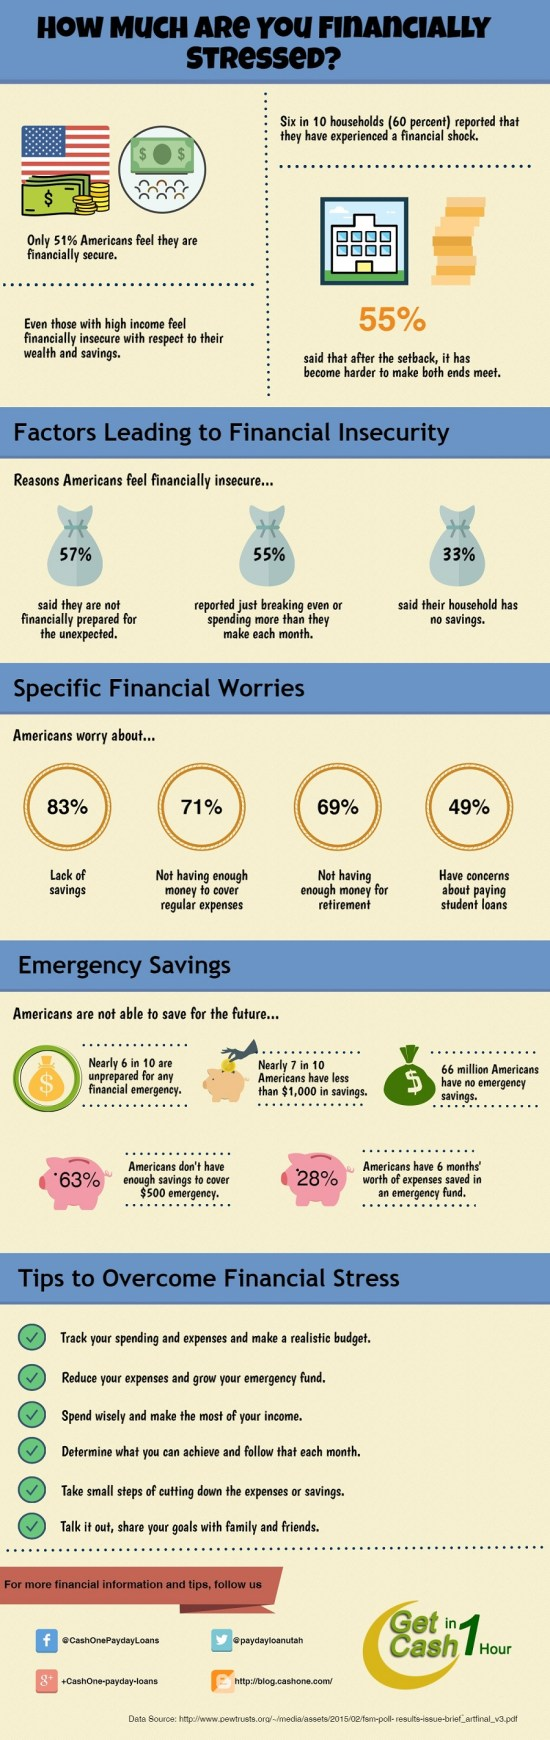 How Much Are You Financially Stressed - CashOne